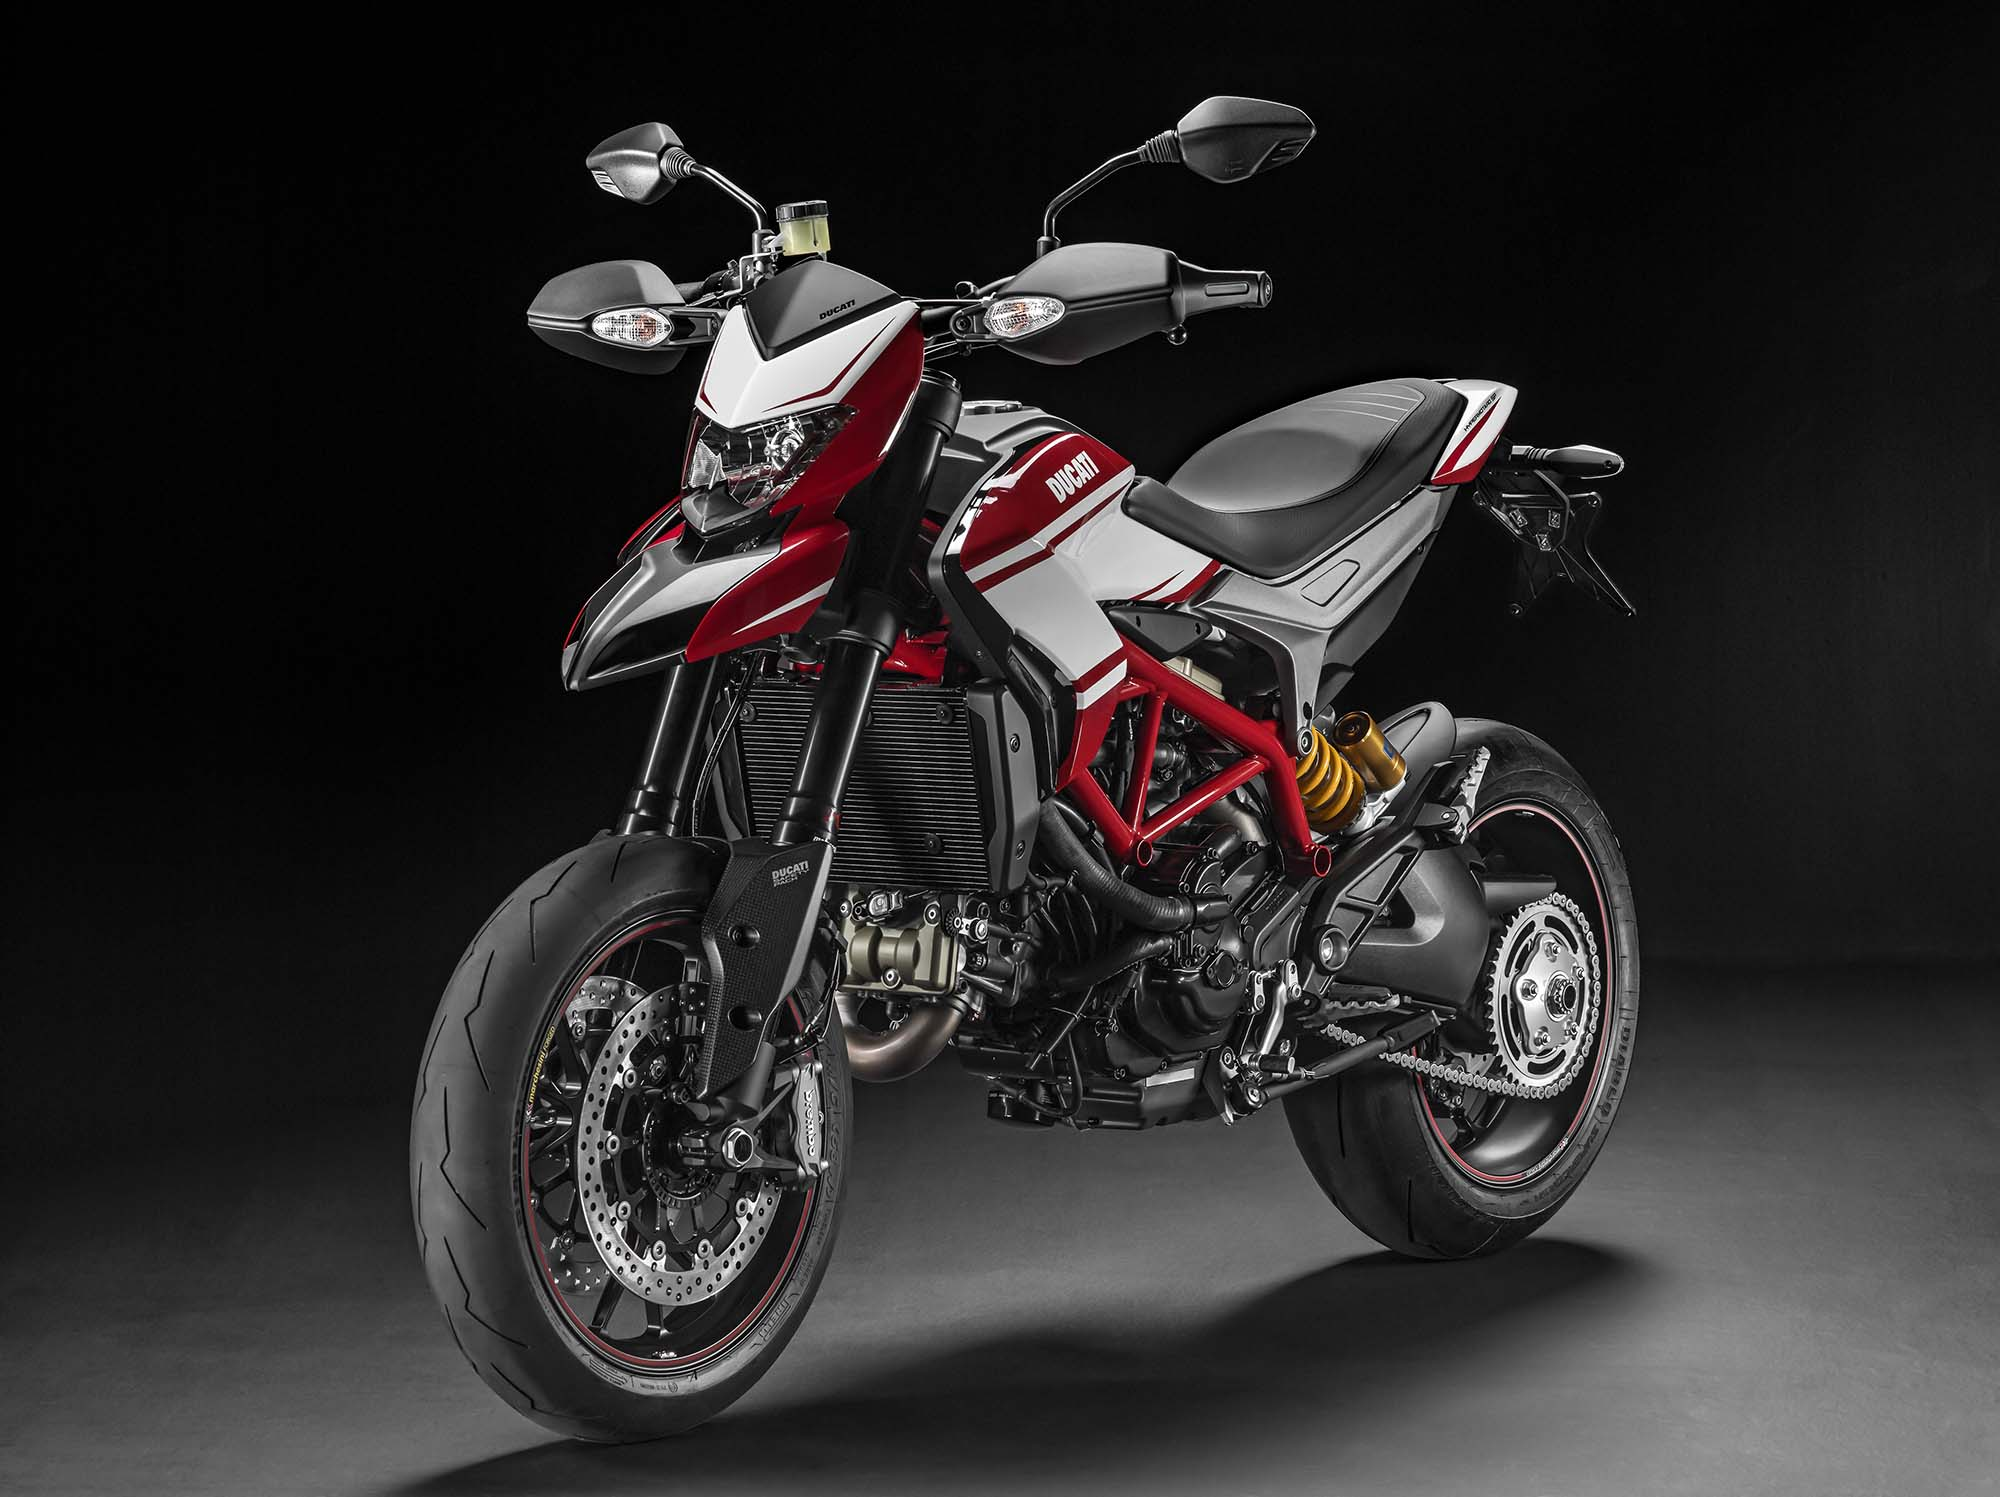 ducati hypermotard sp gets new paint for 2015 asphalt. Black Bedroom Furniture Sets. Home Design Ideas